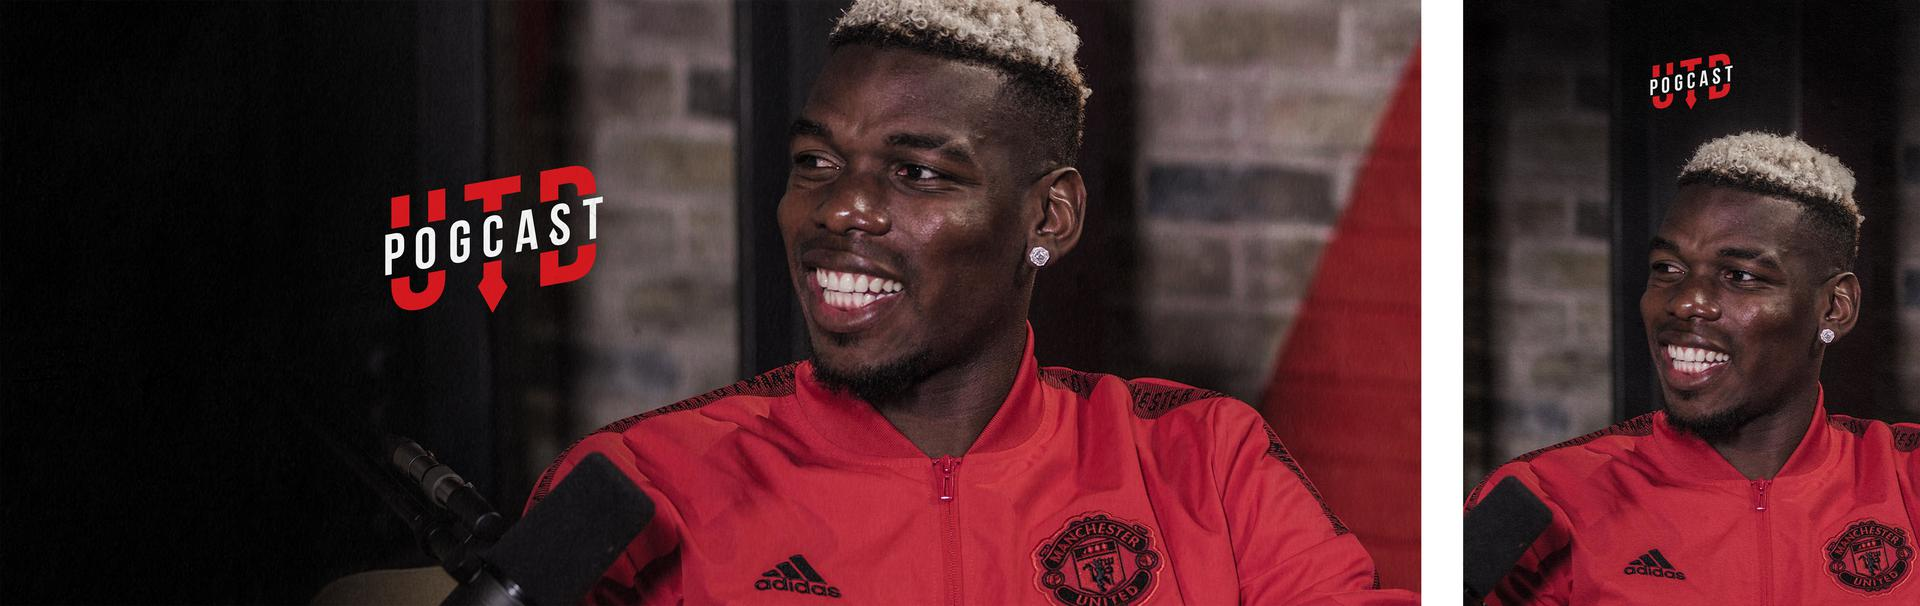 Paul Pogba's UTD Podcast.